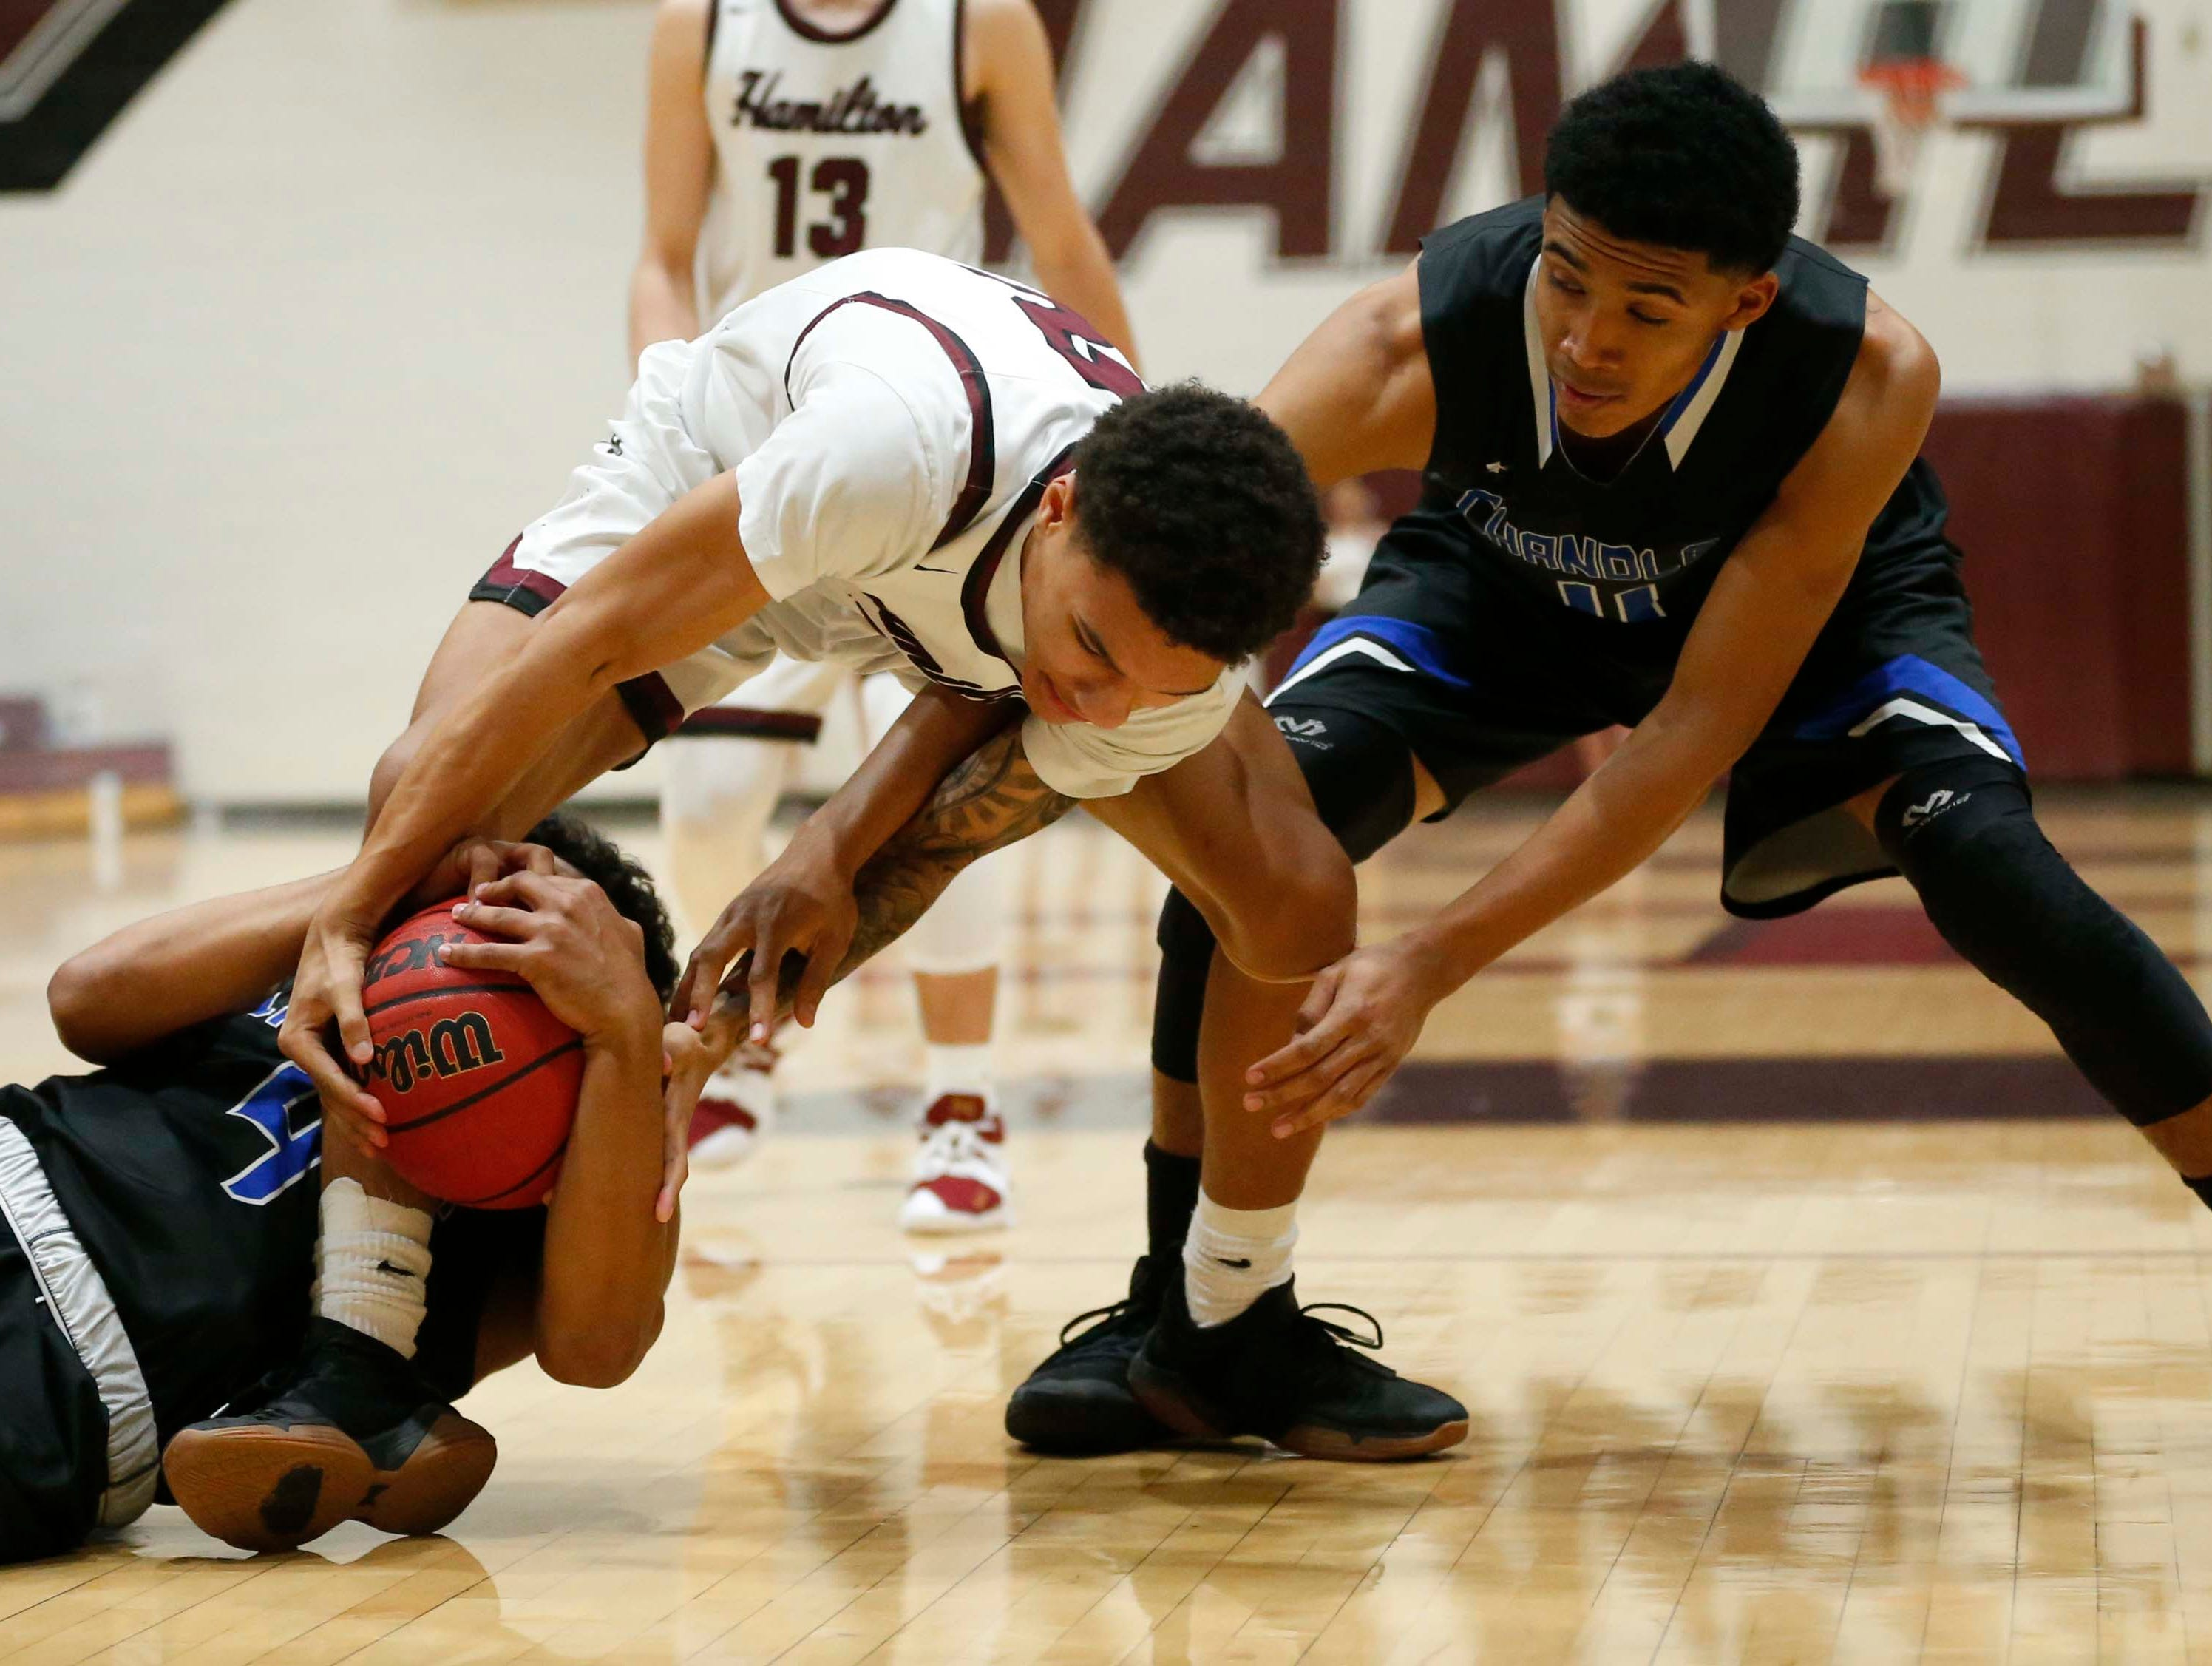 Hamilton's Malik Whitaker (2) battles with Chandler's Adrian Chandler (left) and Isaiah Somers (11) for the ball during the first half in Chandler, Ariz. January 22, 2019.